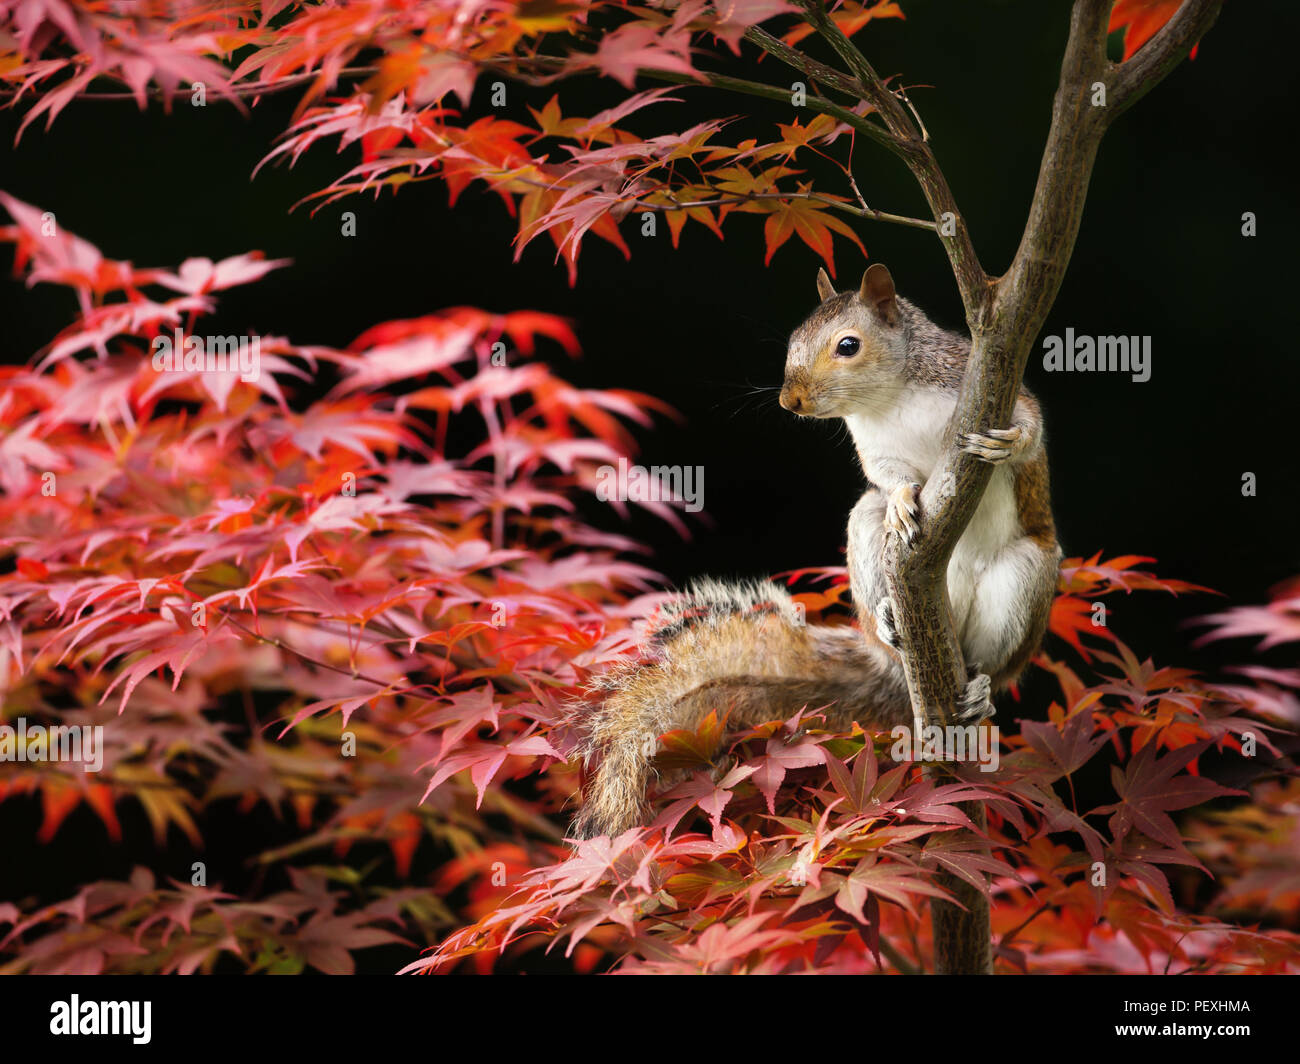 Close-up of a Grey Squirrel sitting on a colorful Japanese Maple tree in summer, UK. Stock Photo